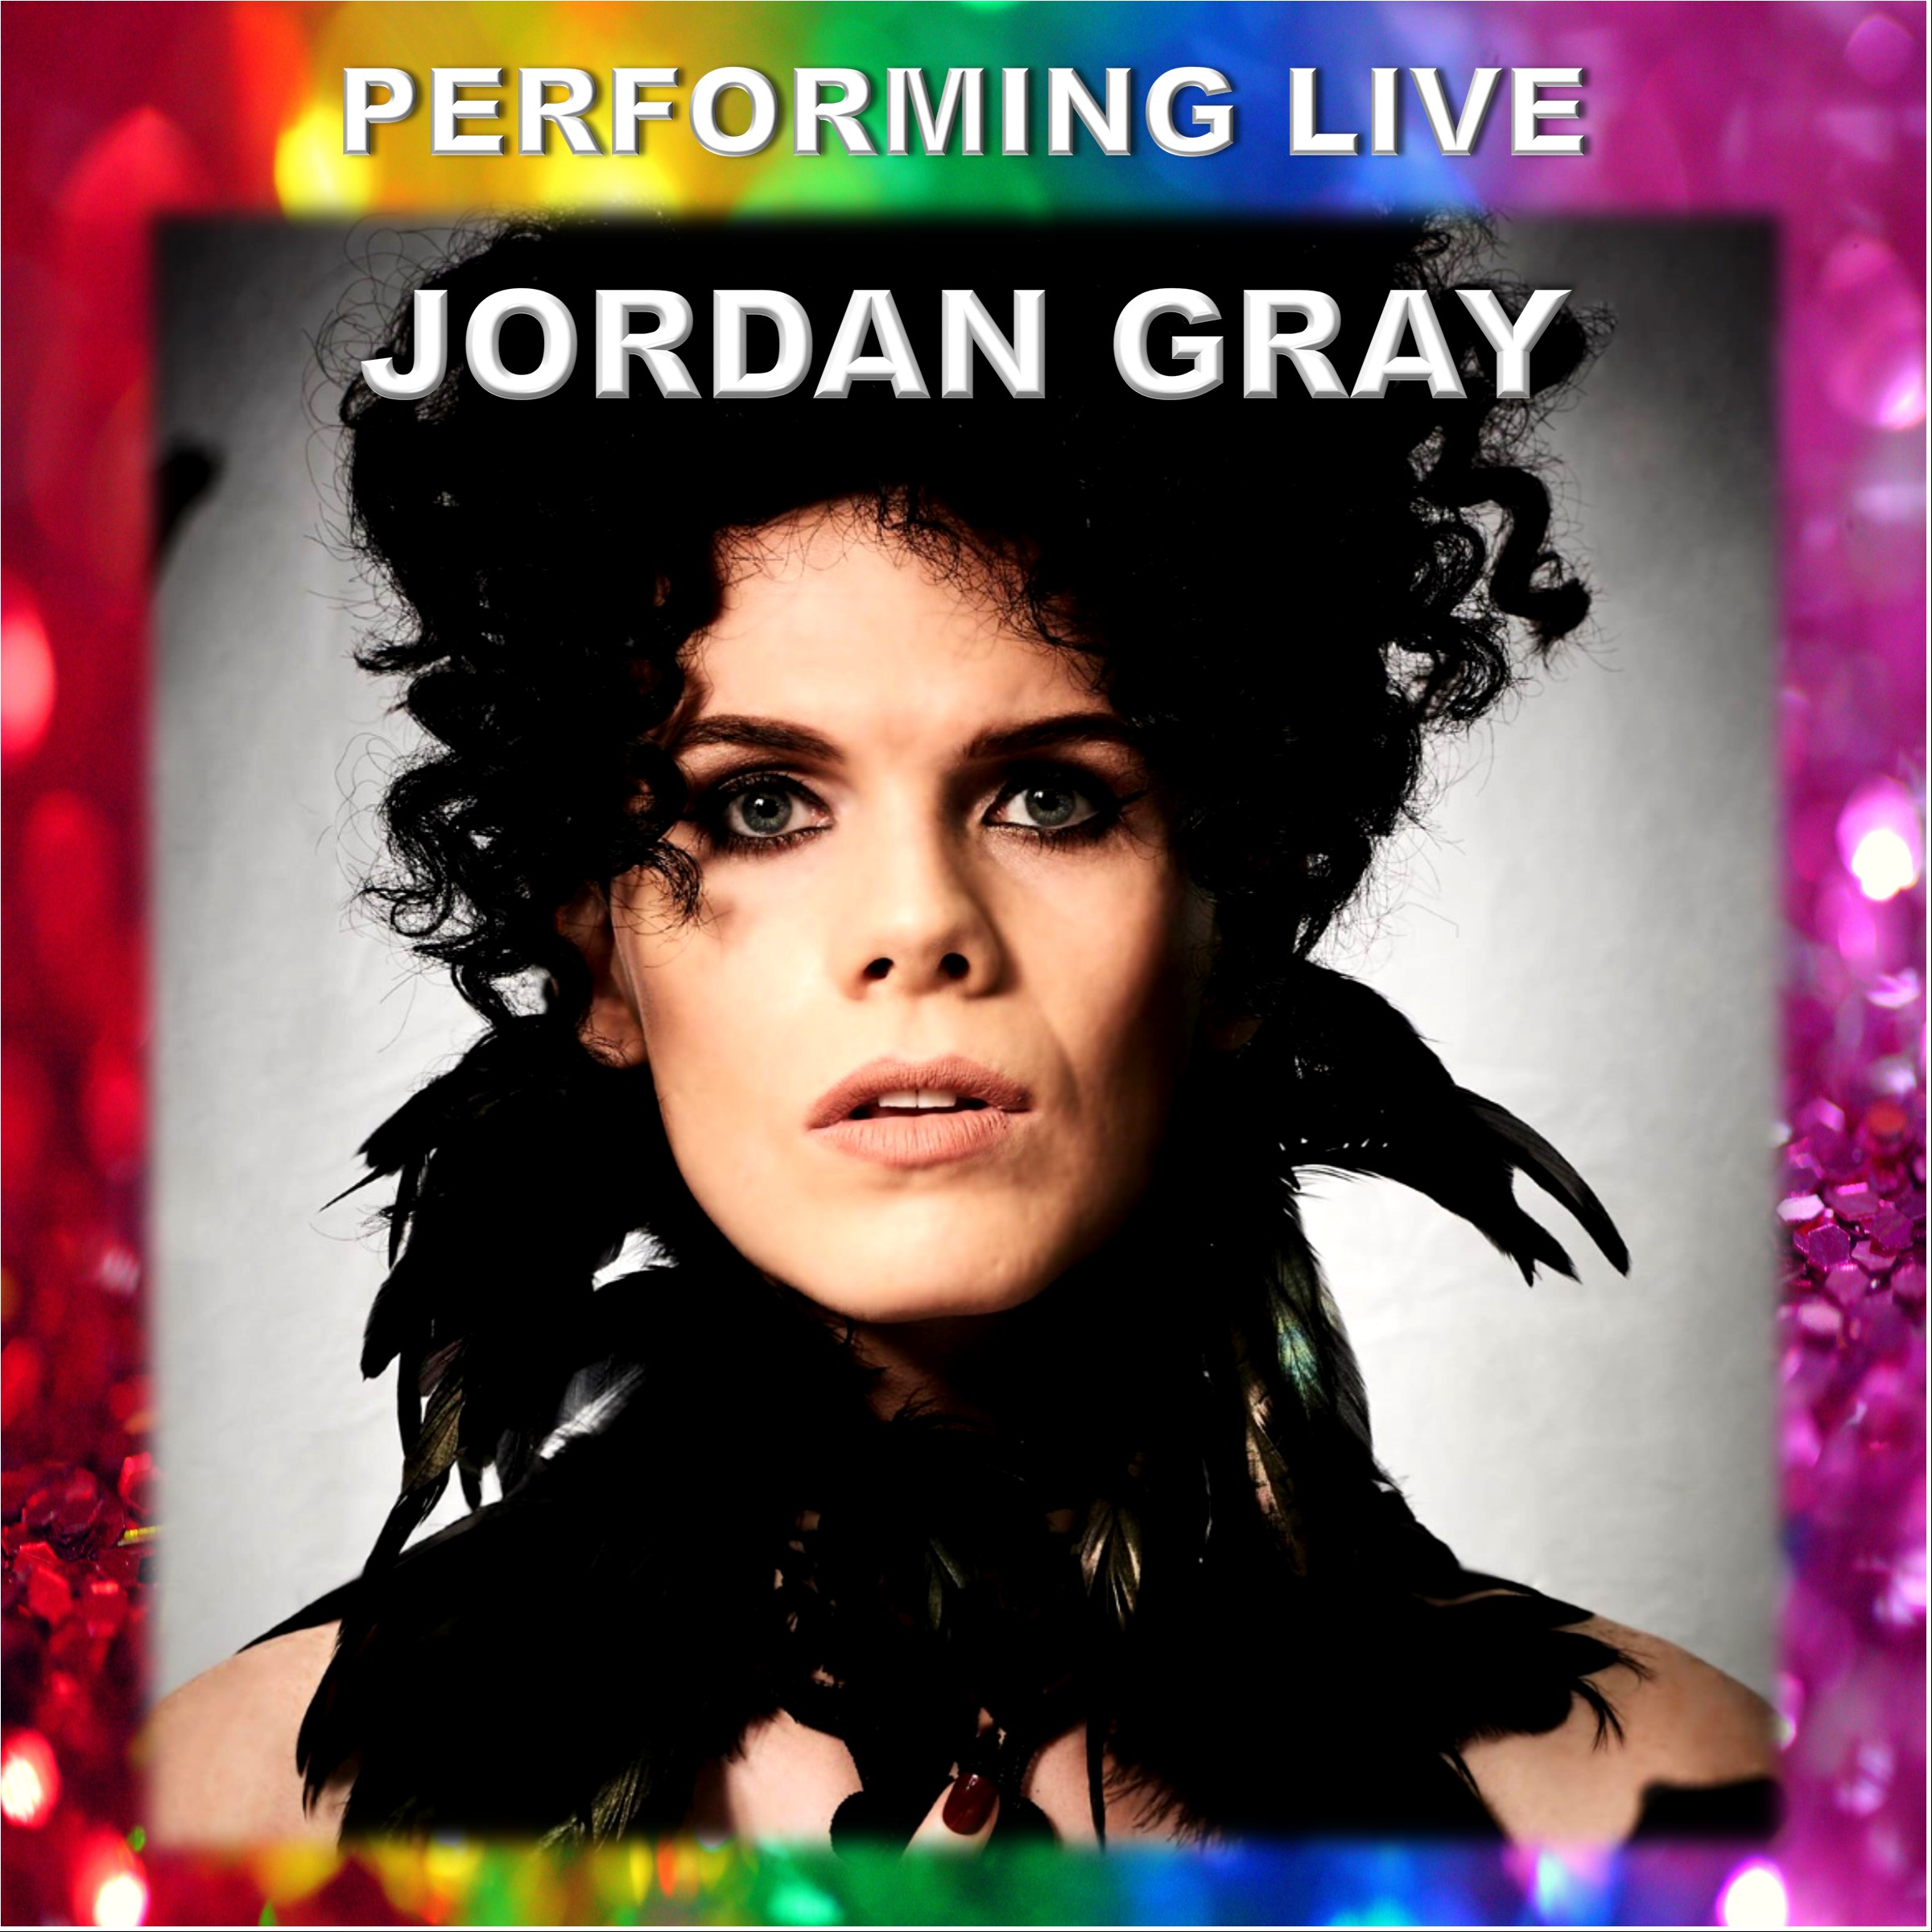 Hosting and Performing Live - Jordan Gray